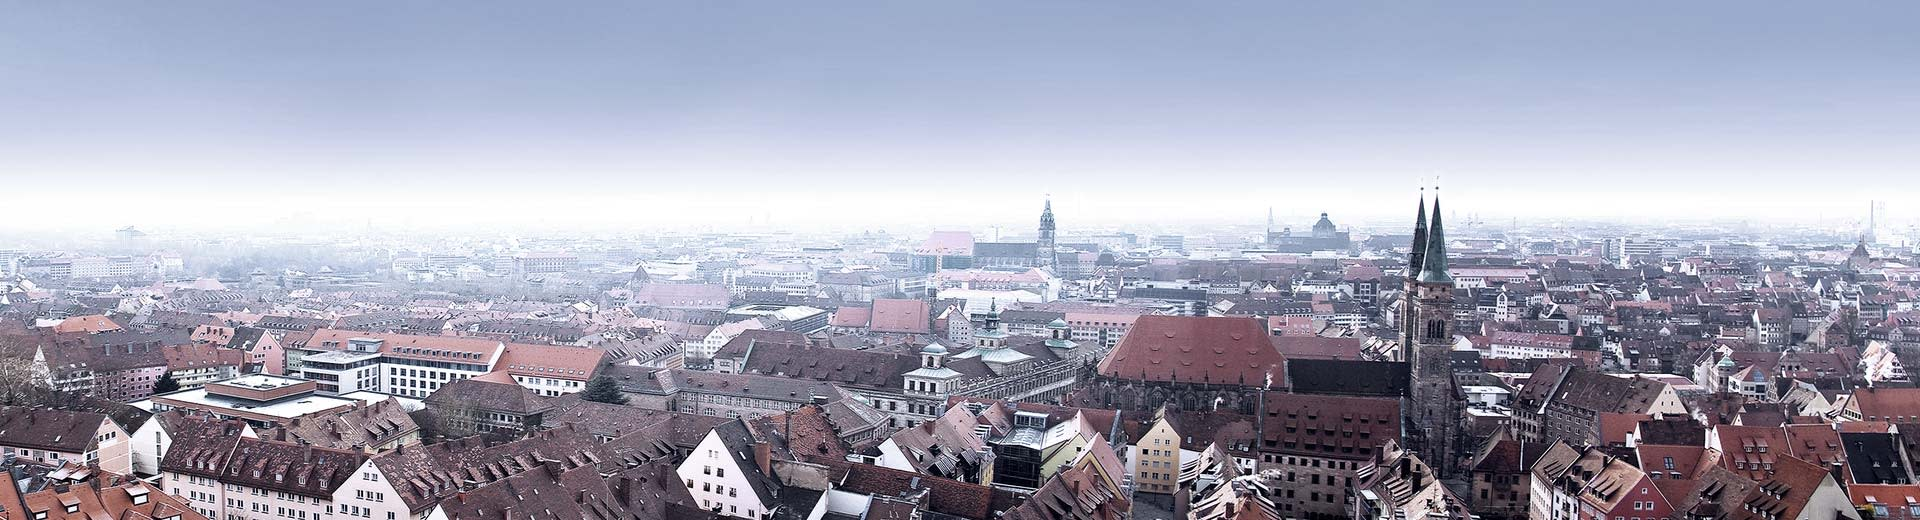 The red roofs and church steepls of historic Nuremberg